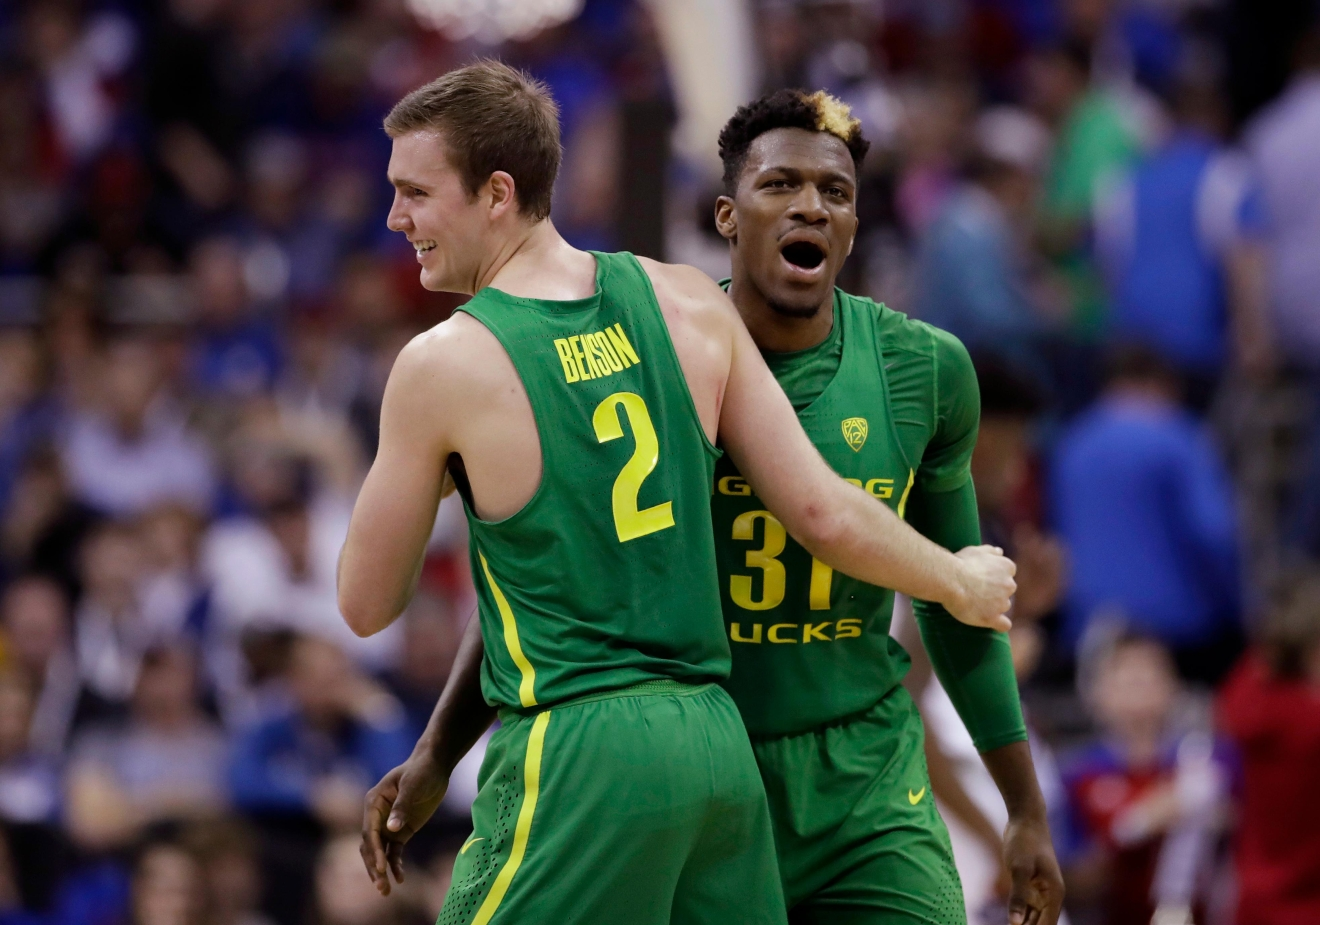 Oregon guard Casey Benson (2) celebrates with teammate Dylan Ennis at the end of the first half of the Midwest Regional final against Kansas in the NCAA men's college basketball tournament, Saturday, March 25, 2017, in Kansas City, Mo. (AP Photo/Charlie Riedel)